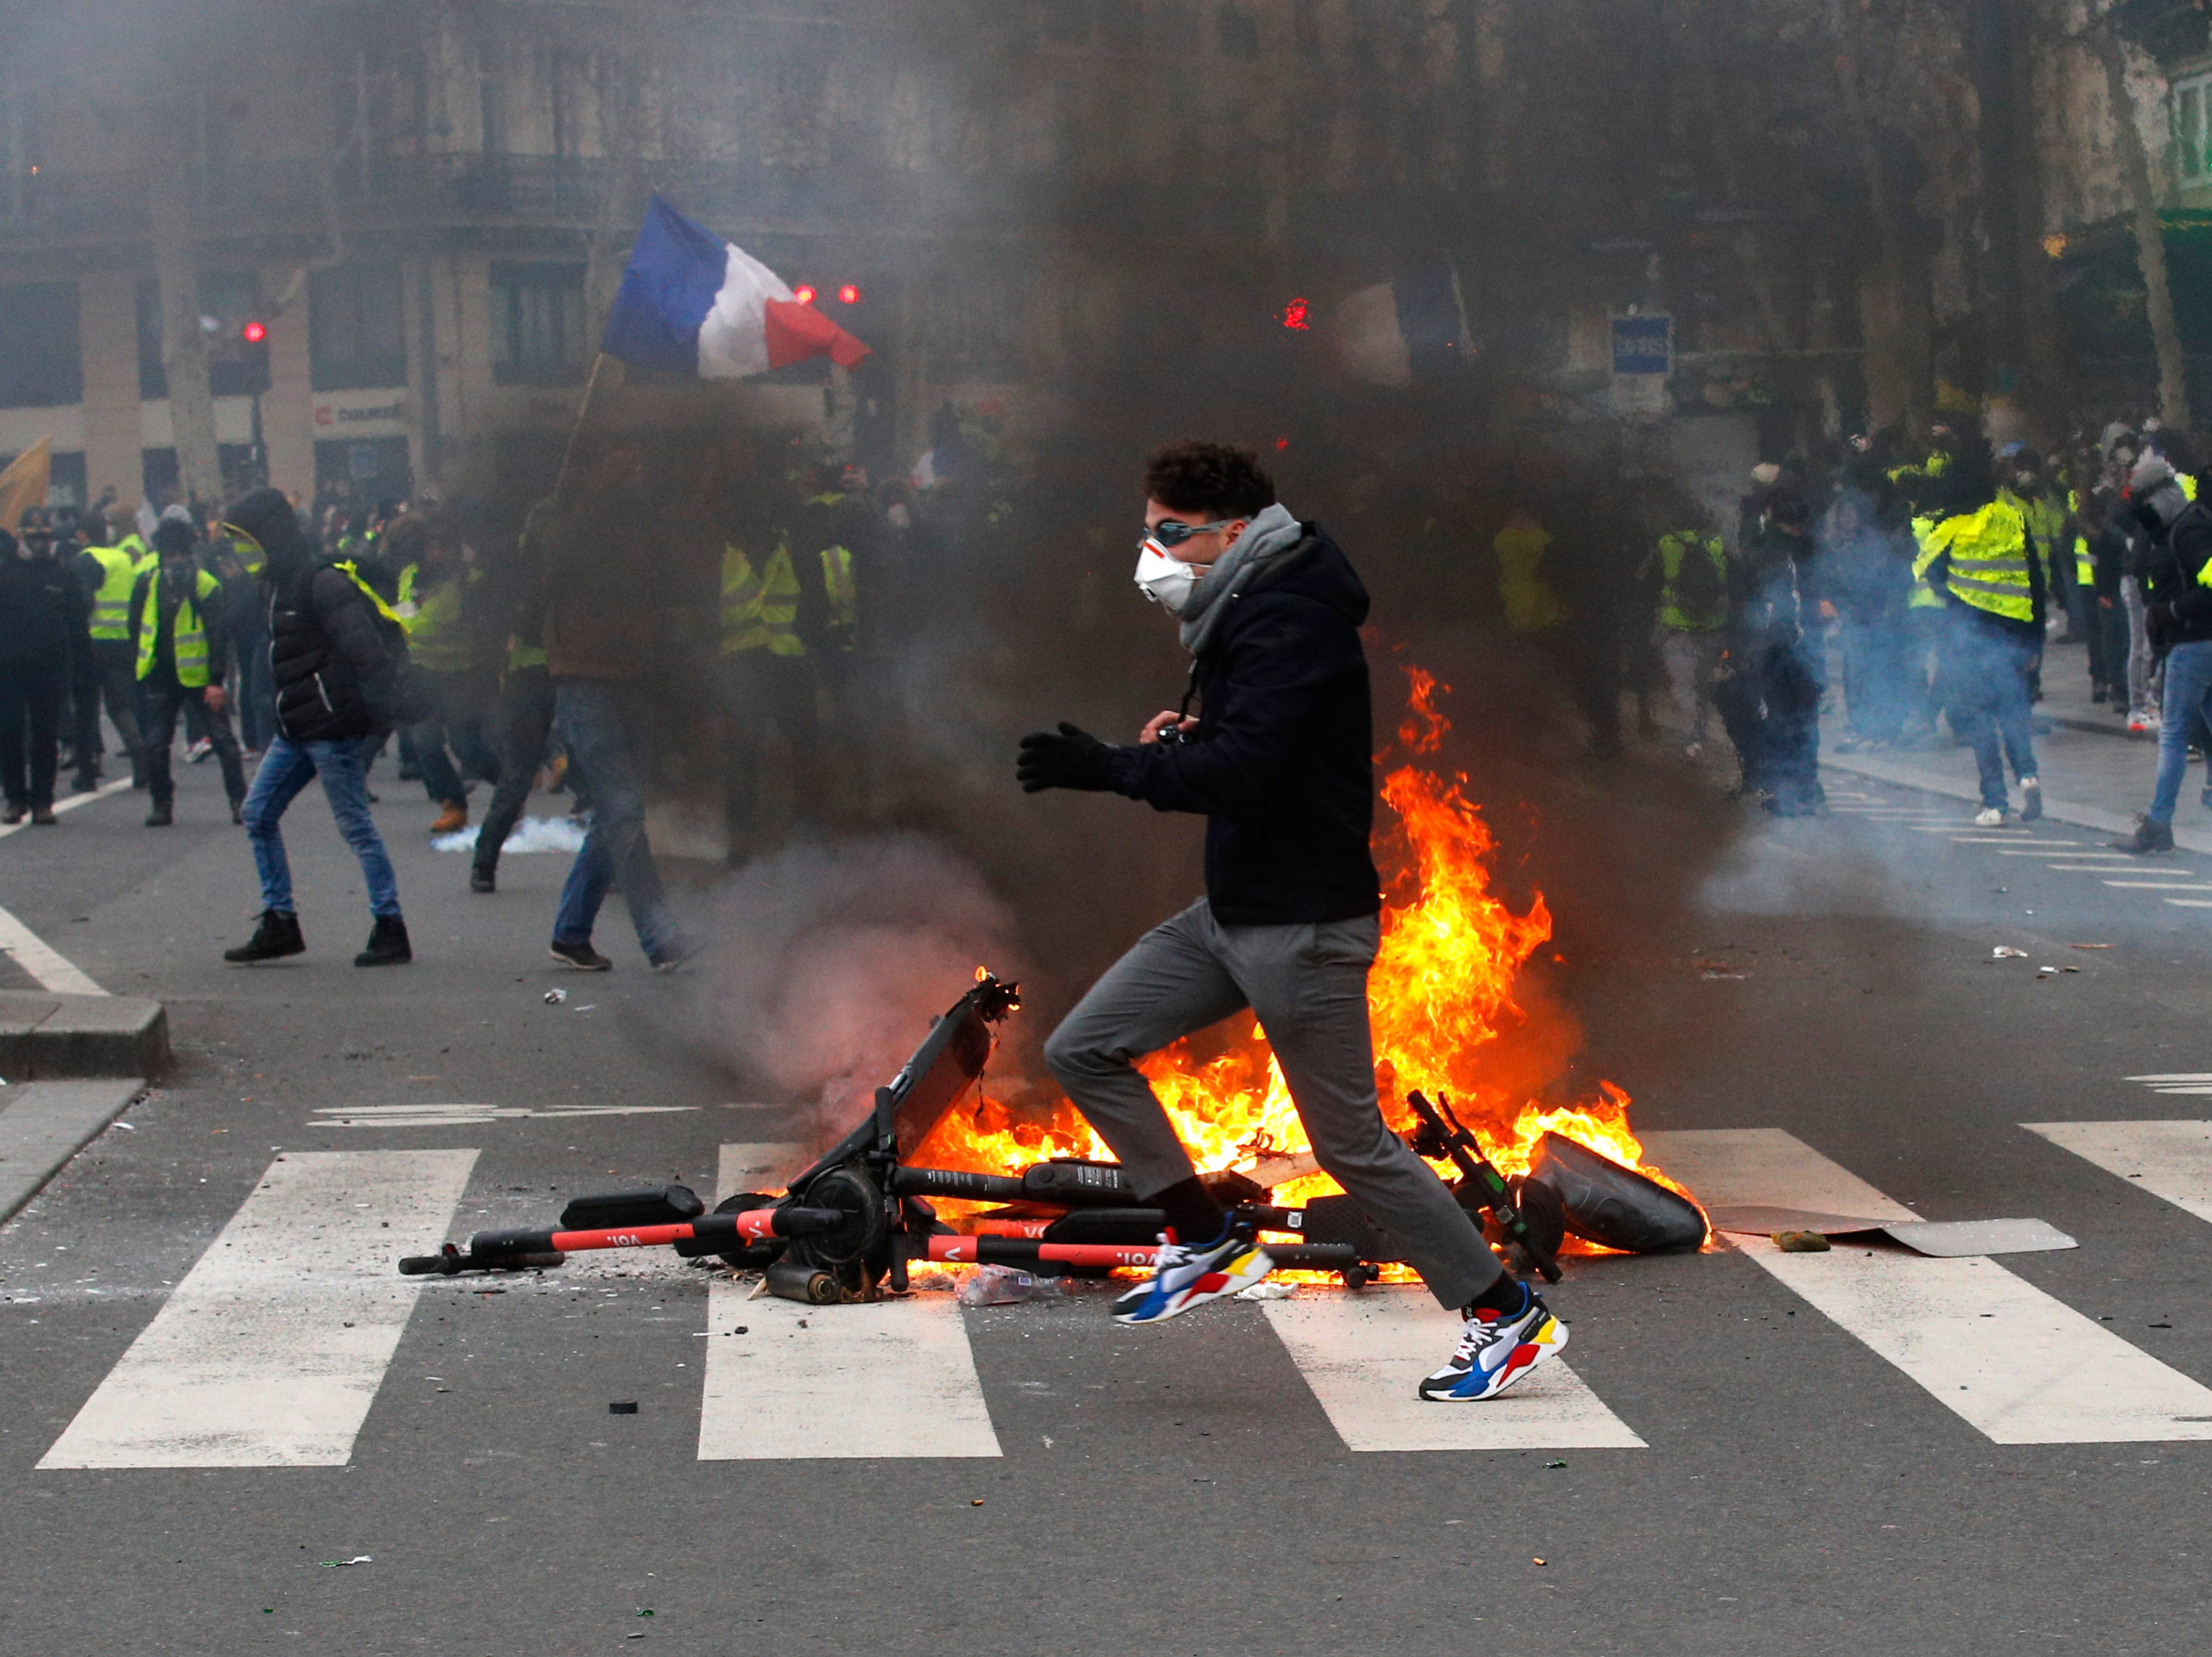 A demonstrator runs by a fire during a yellow vest protest Saturday, Feb. 2, 2019 in Paris. France's yellow vest protesters are taking to the streets to keep pressure on French President Emmanuel Macron's government, for the 12th straight weekend of demonstrations. This week, demonstrators in the French capital are planning to pay tribute to the yellow vests injured during clashes with police.